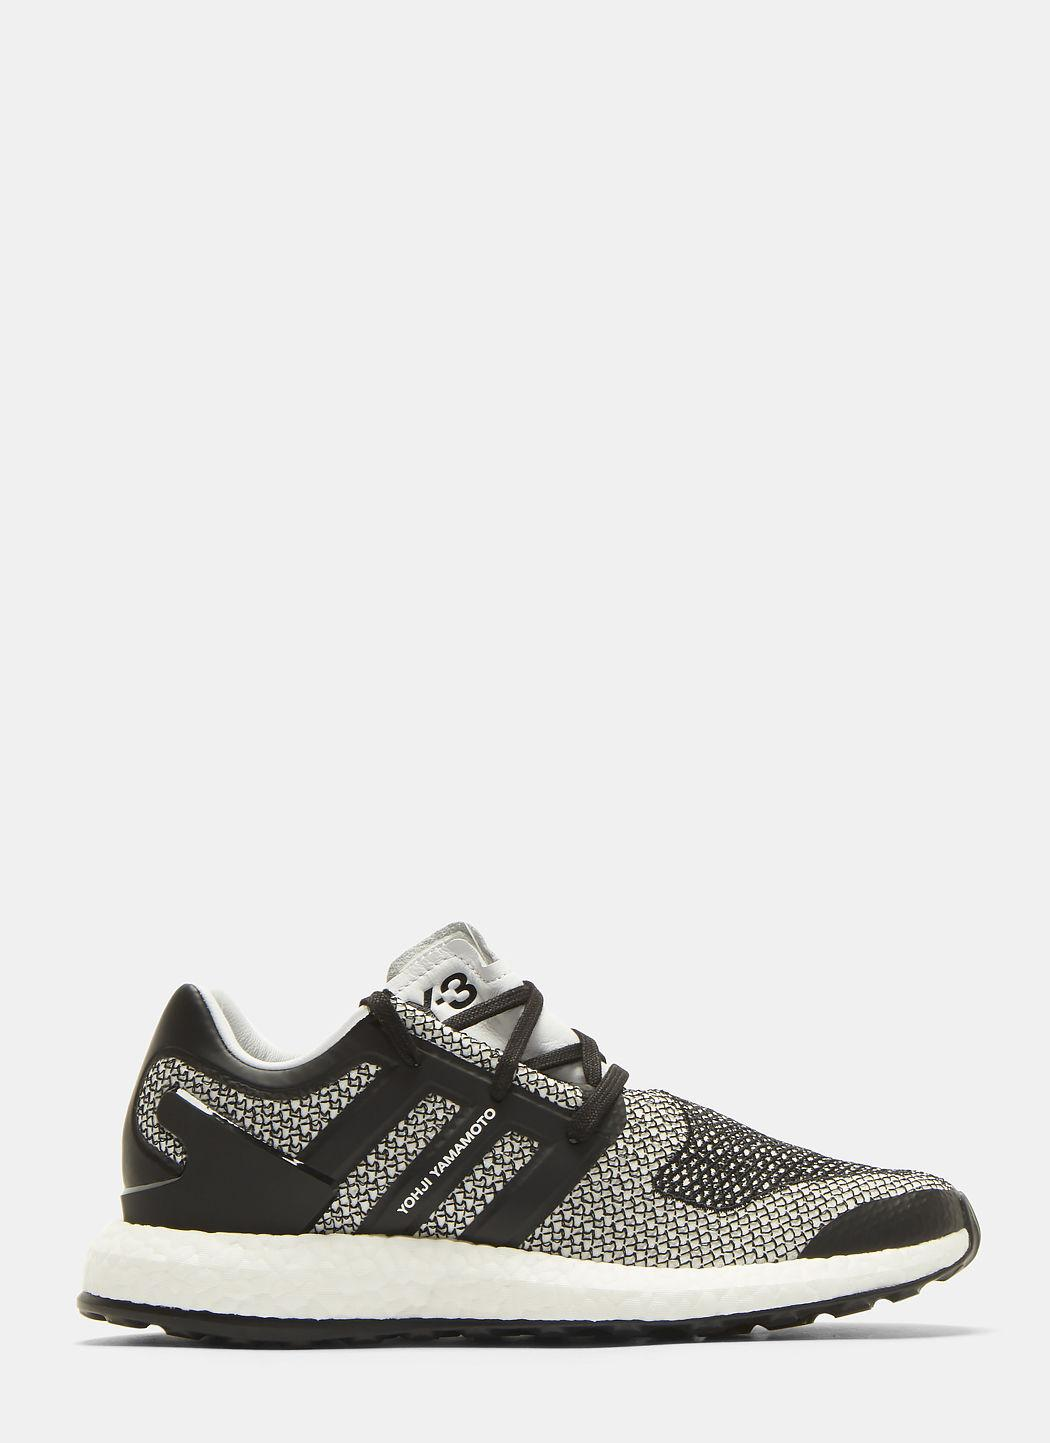 392cfdca7 Y-3 Pure Boost Rubber-Trimmed Primeknit Sneakers In Black